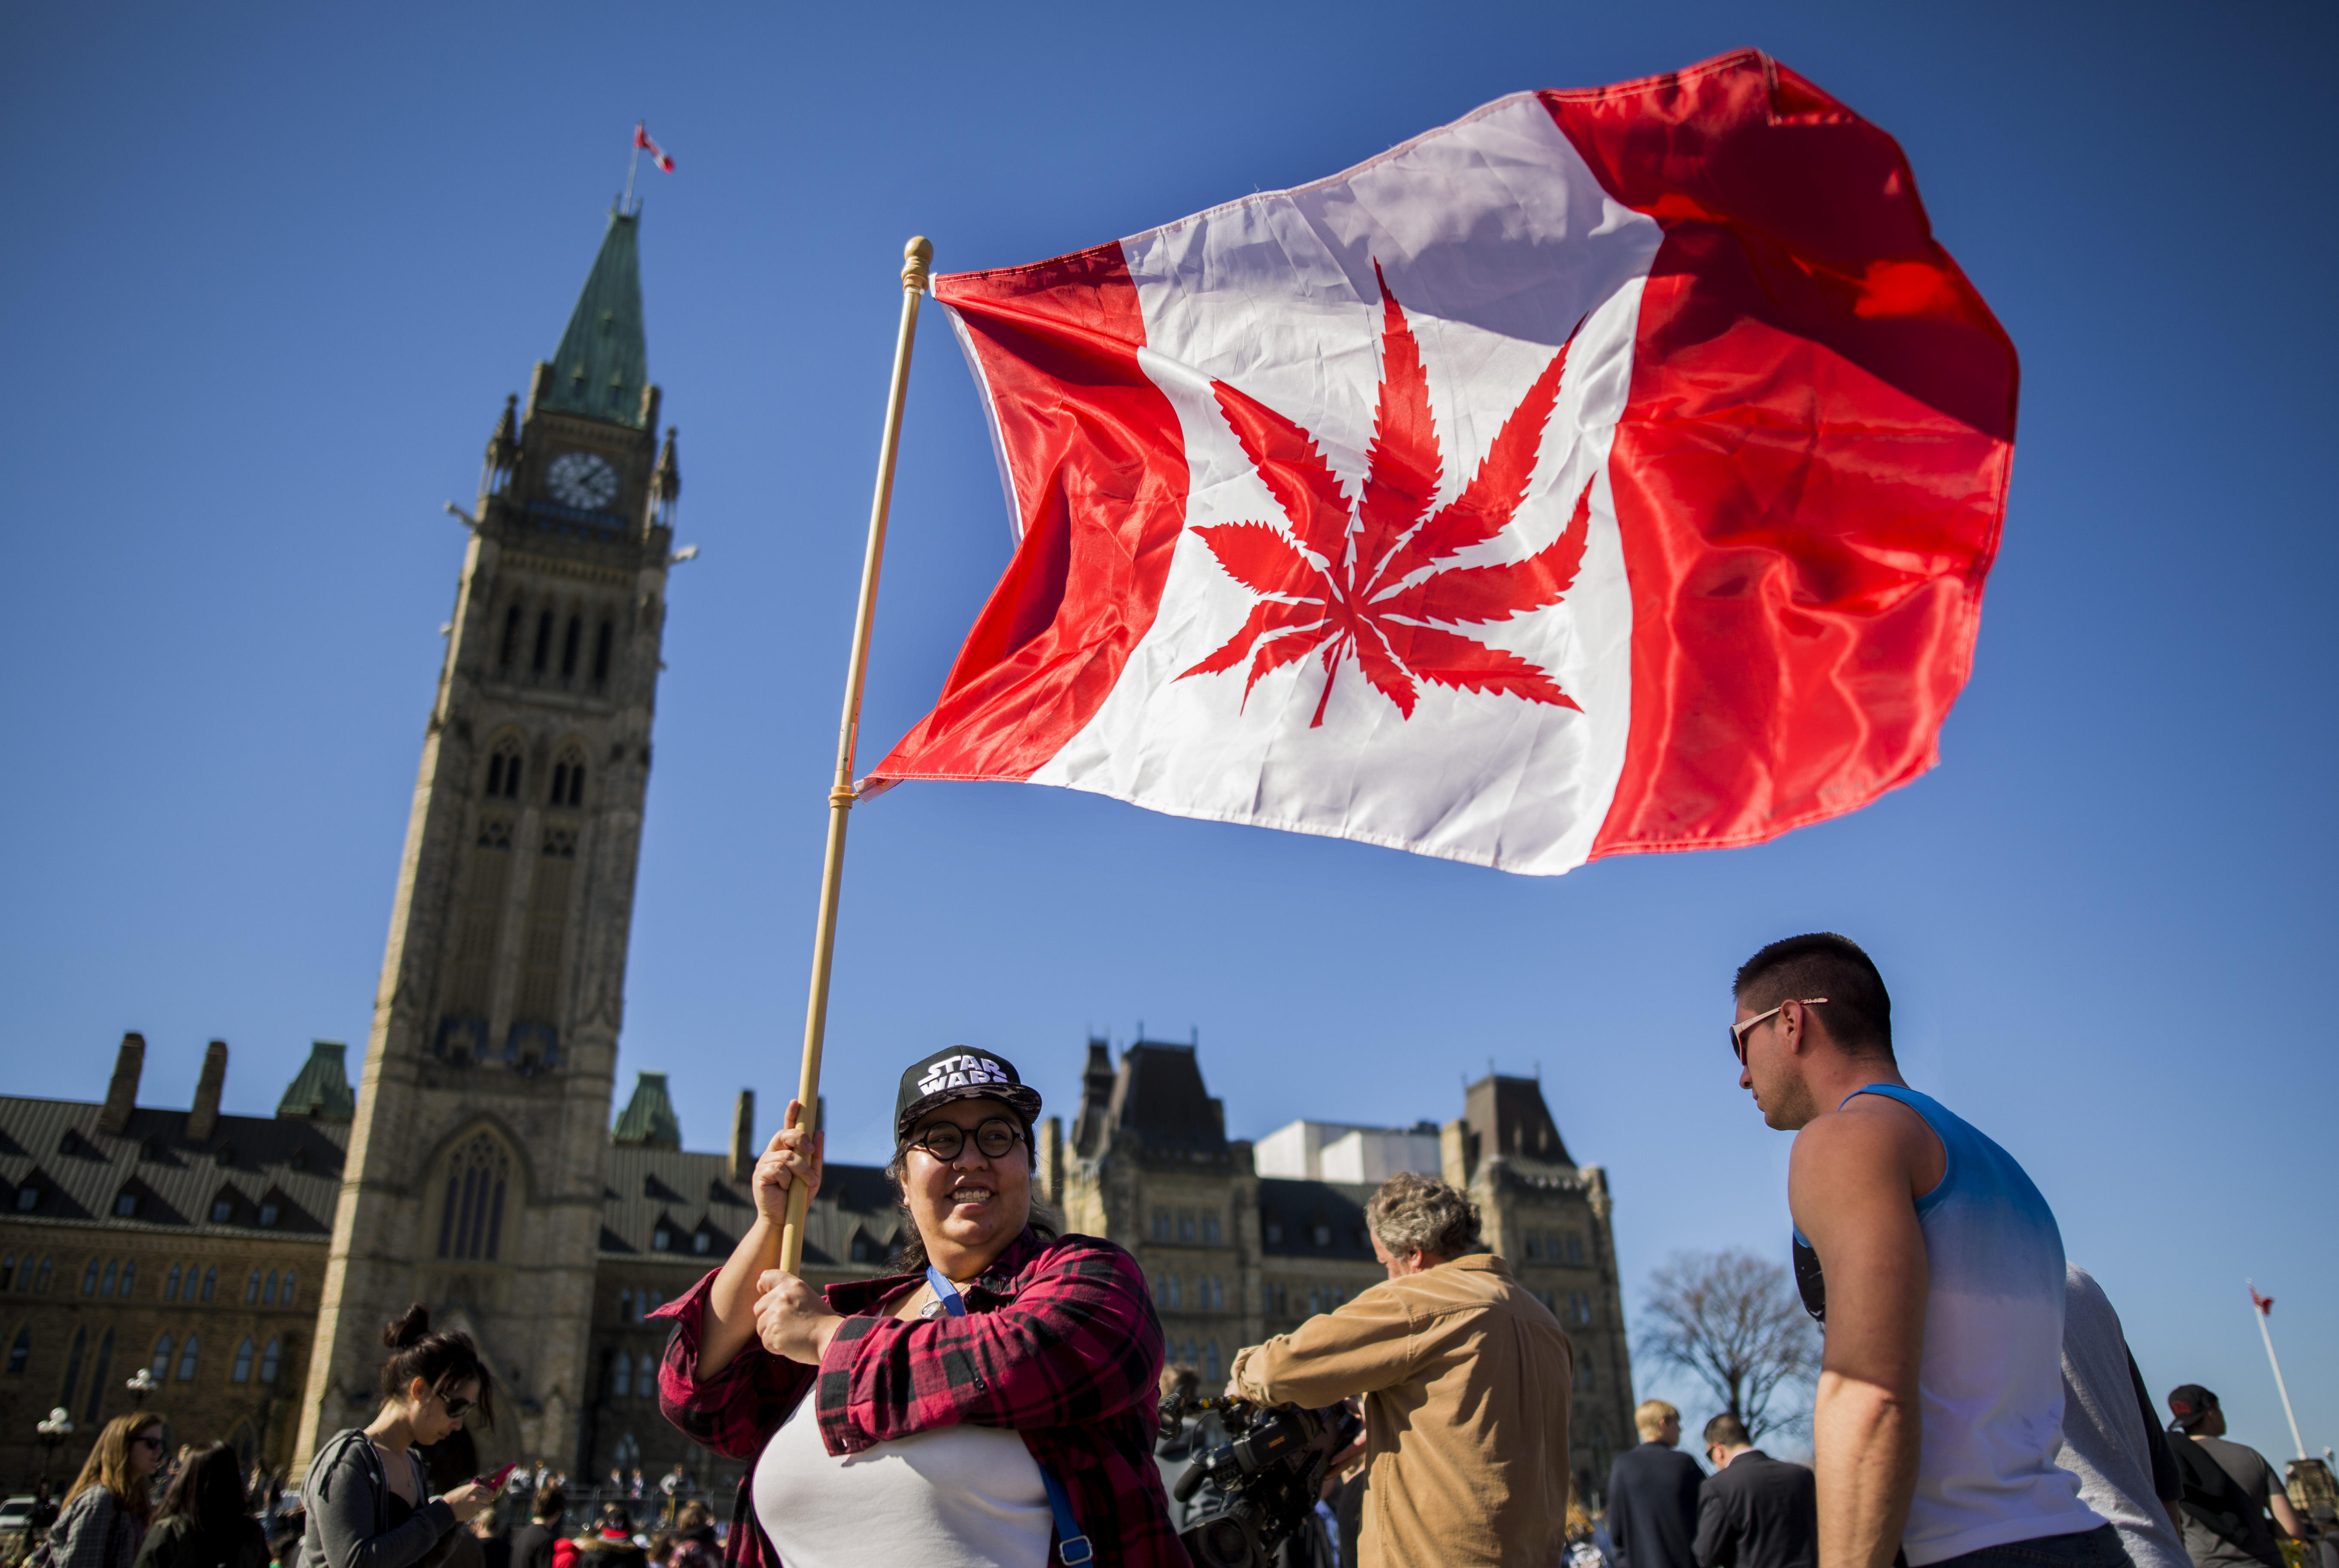 Canada legalizes pot: Five things to know as Canada becomes the